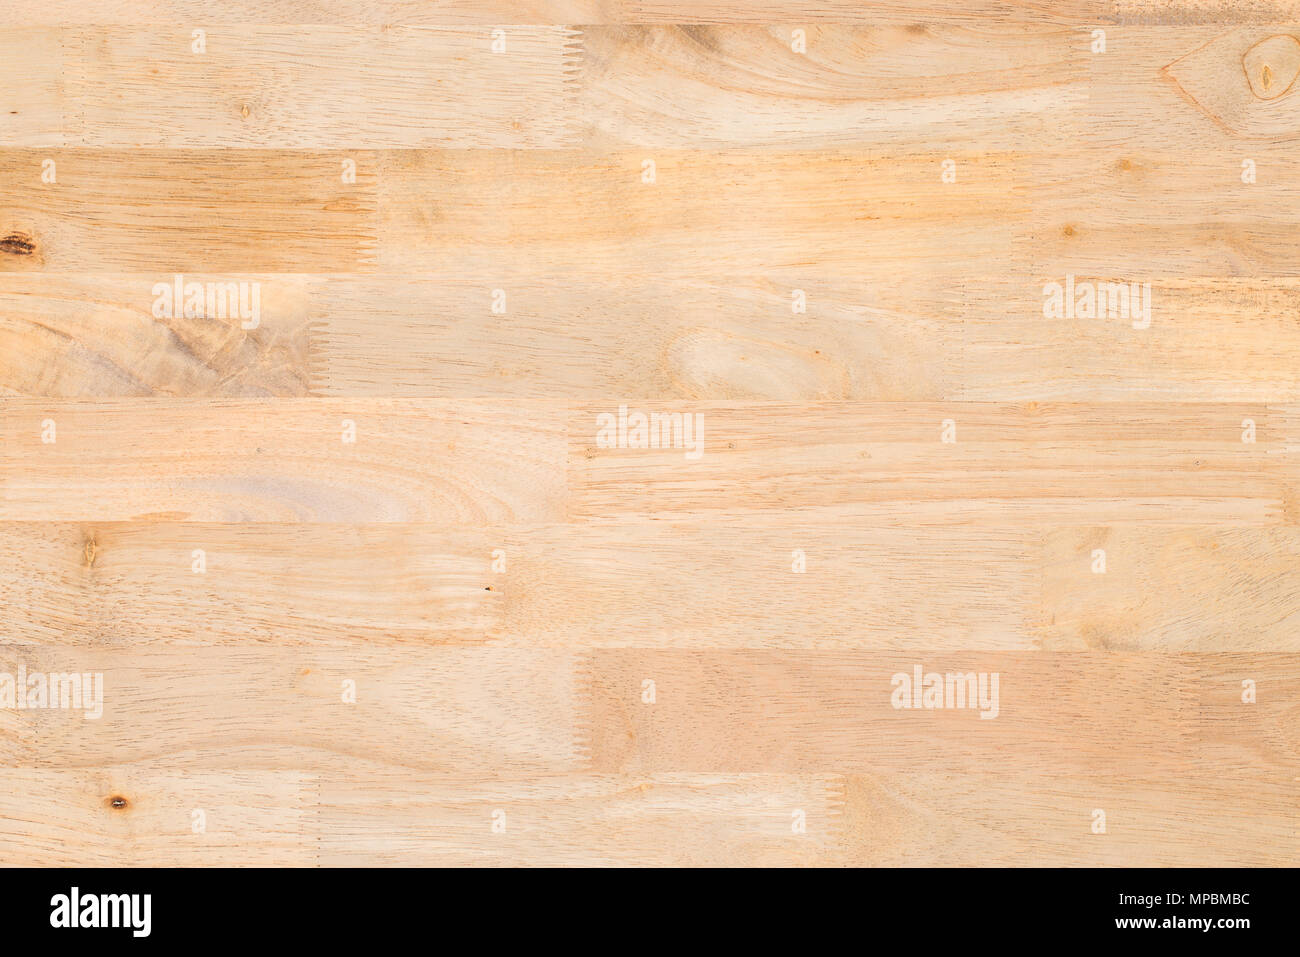 Wood Texture Background Seamless Floor